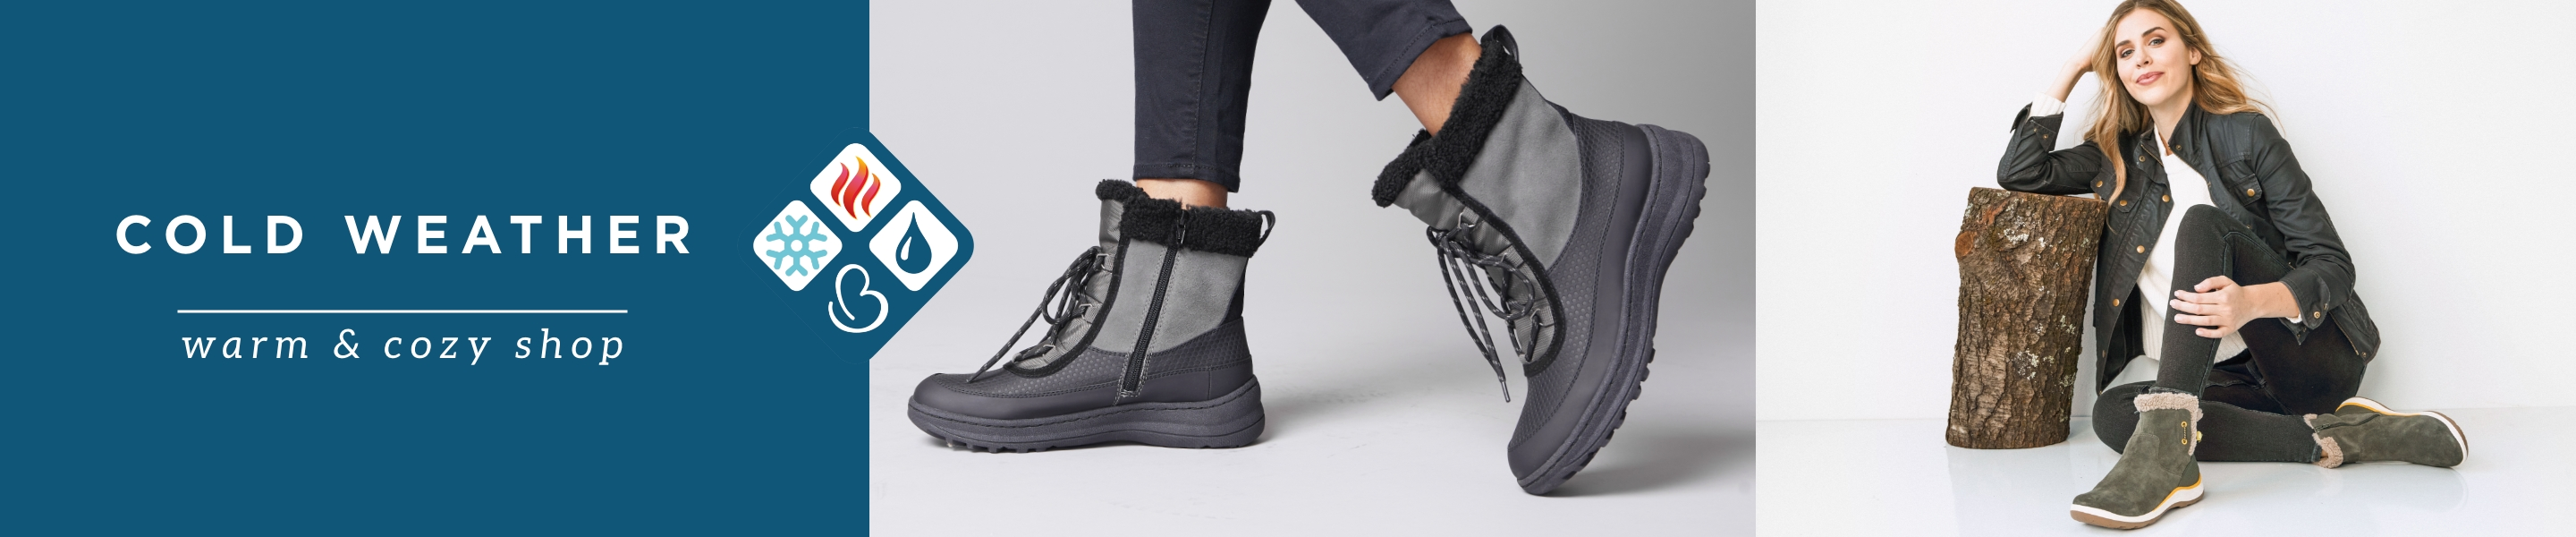 banner-boots-coldweather2.jpg